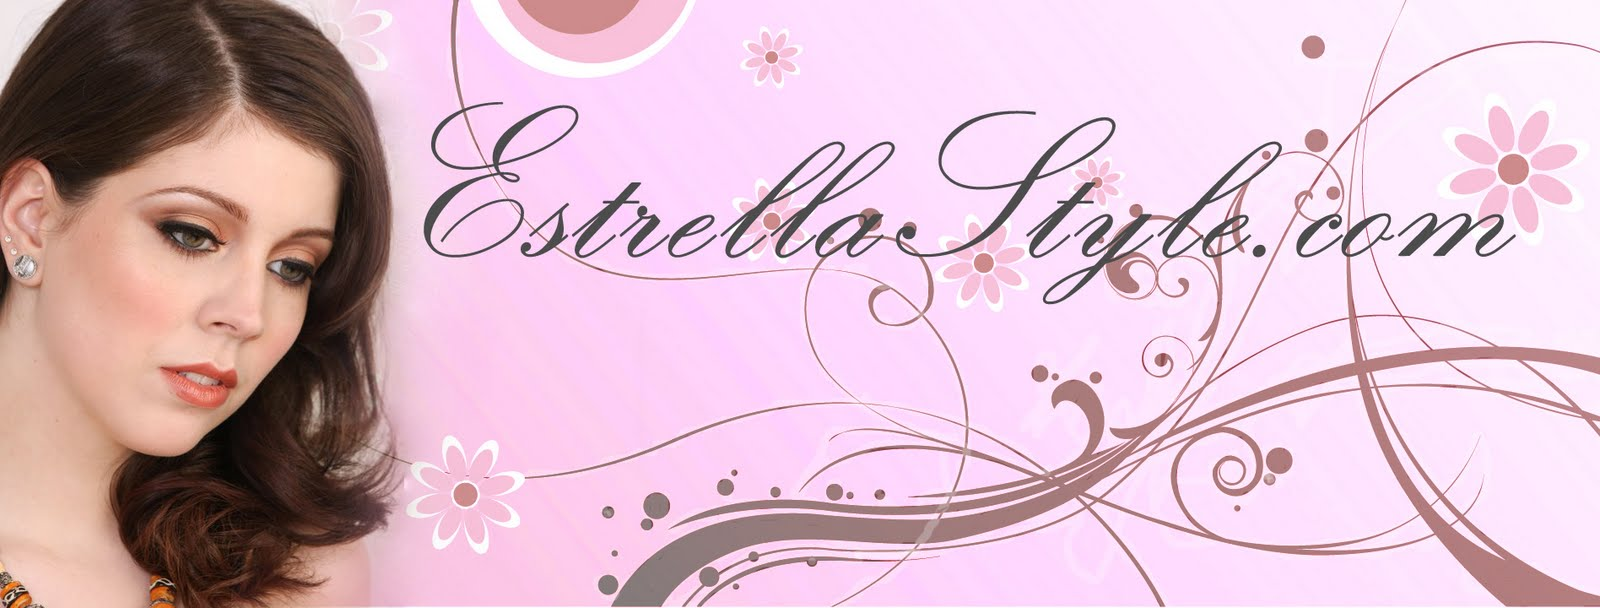 EstrellaStyle88